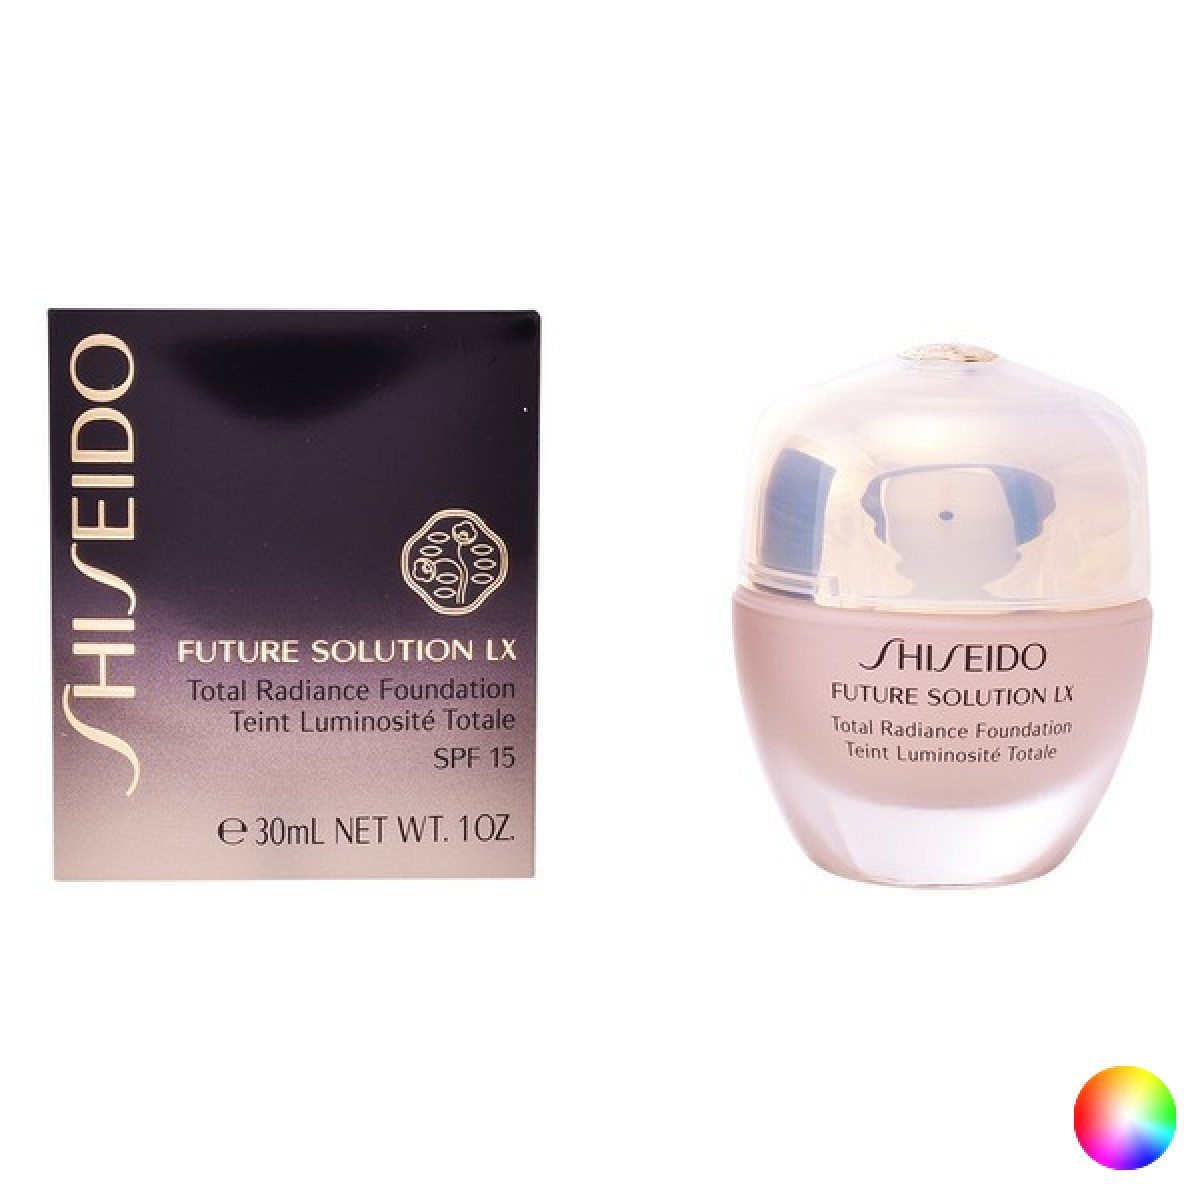 Flydende Makeup Future Solution Lx Shiseido - Farve: 4 - Neutral